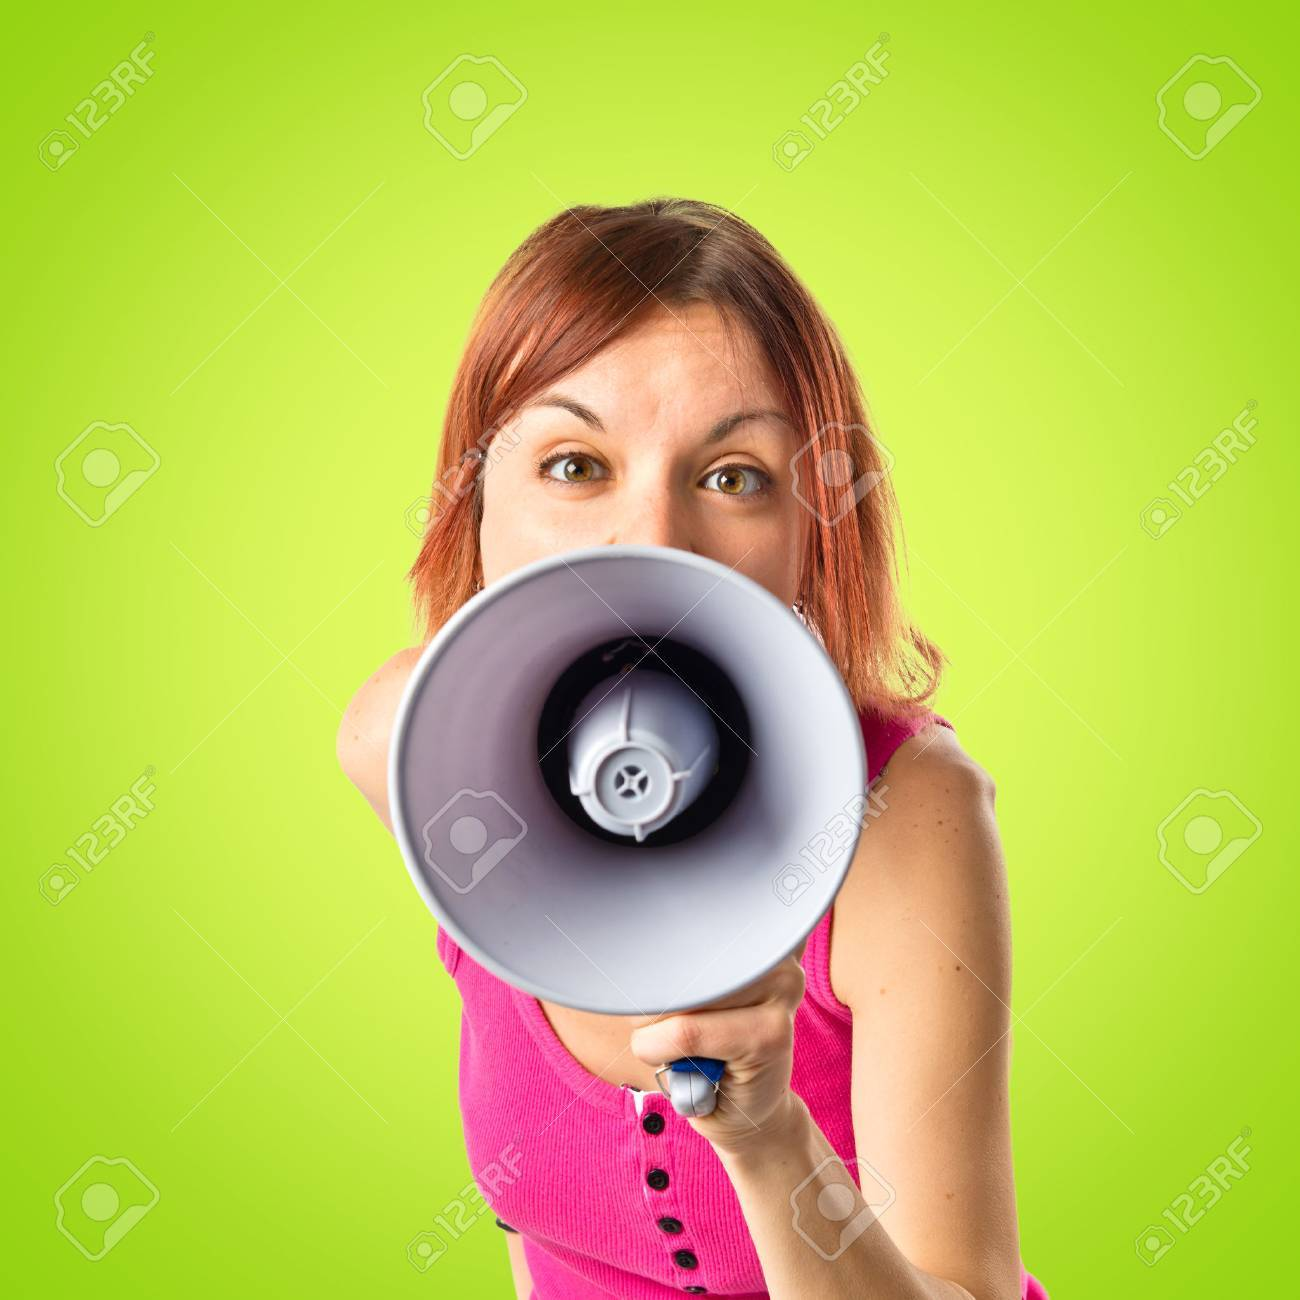 Redhead girl shouting with a megaphone over green background Stock Photo - 33321471